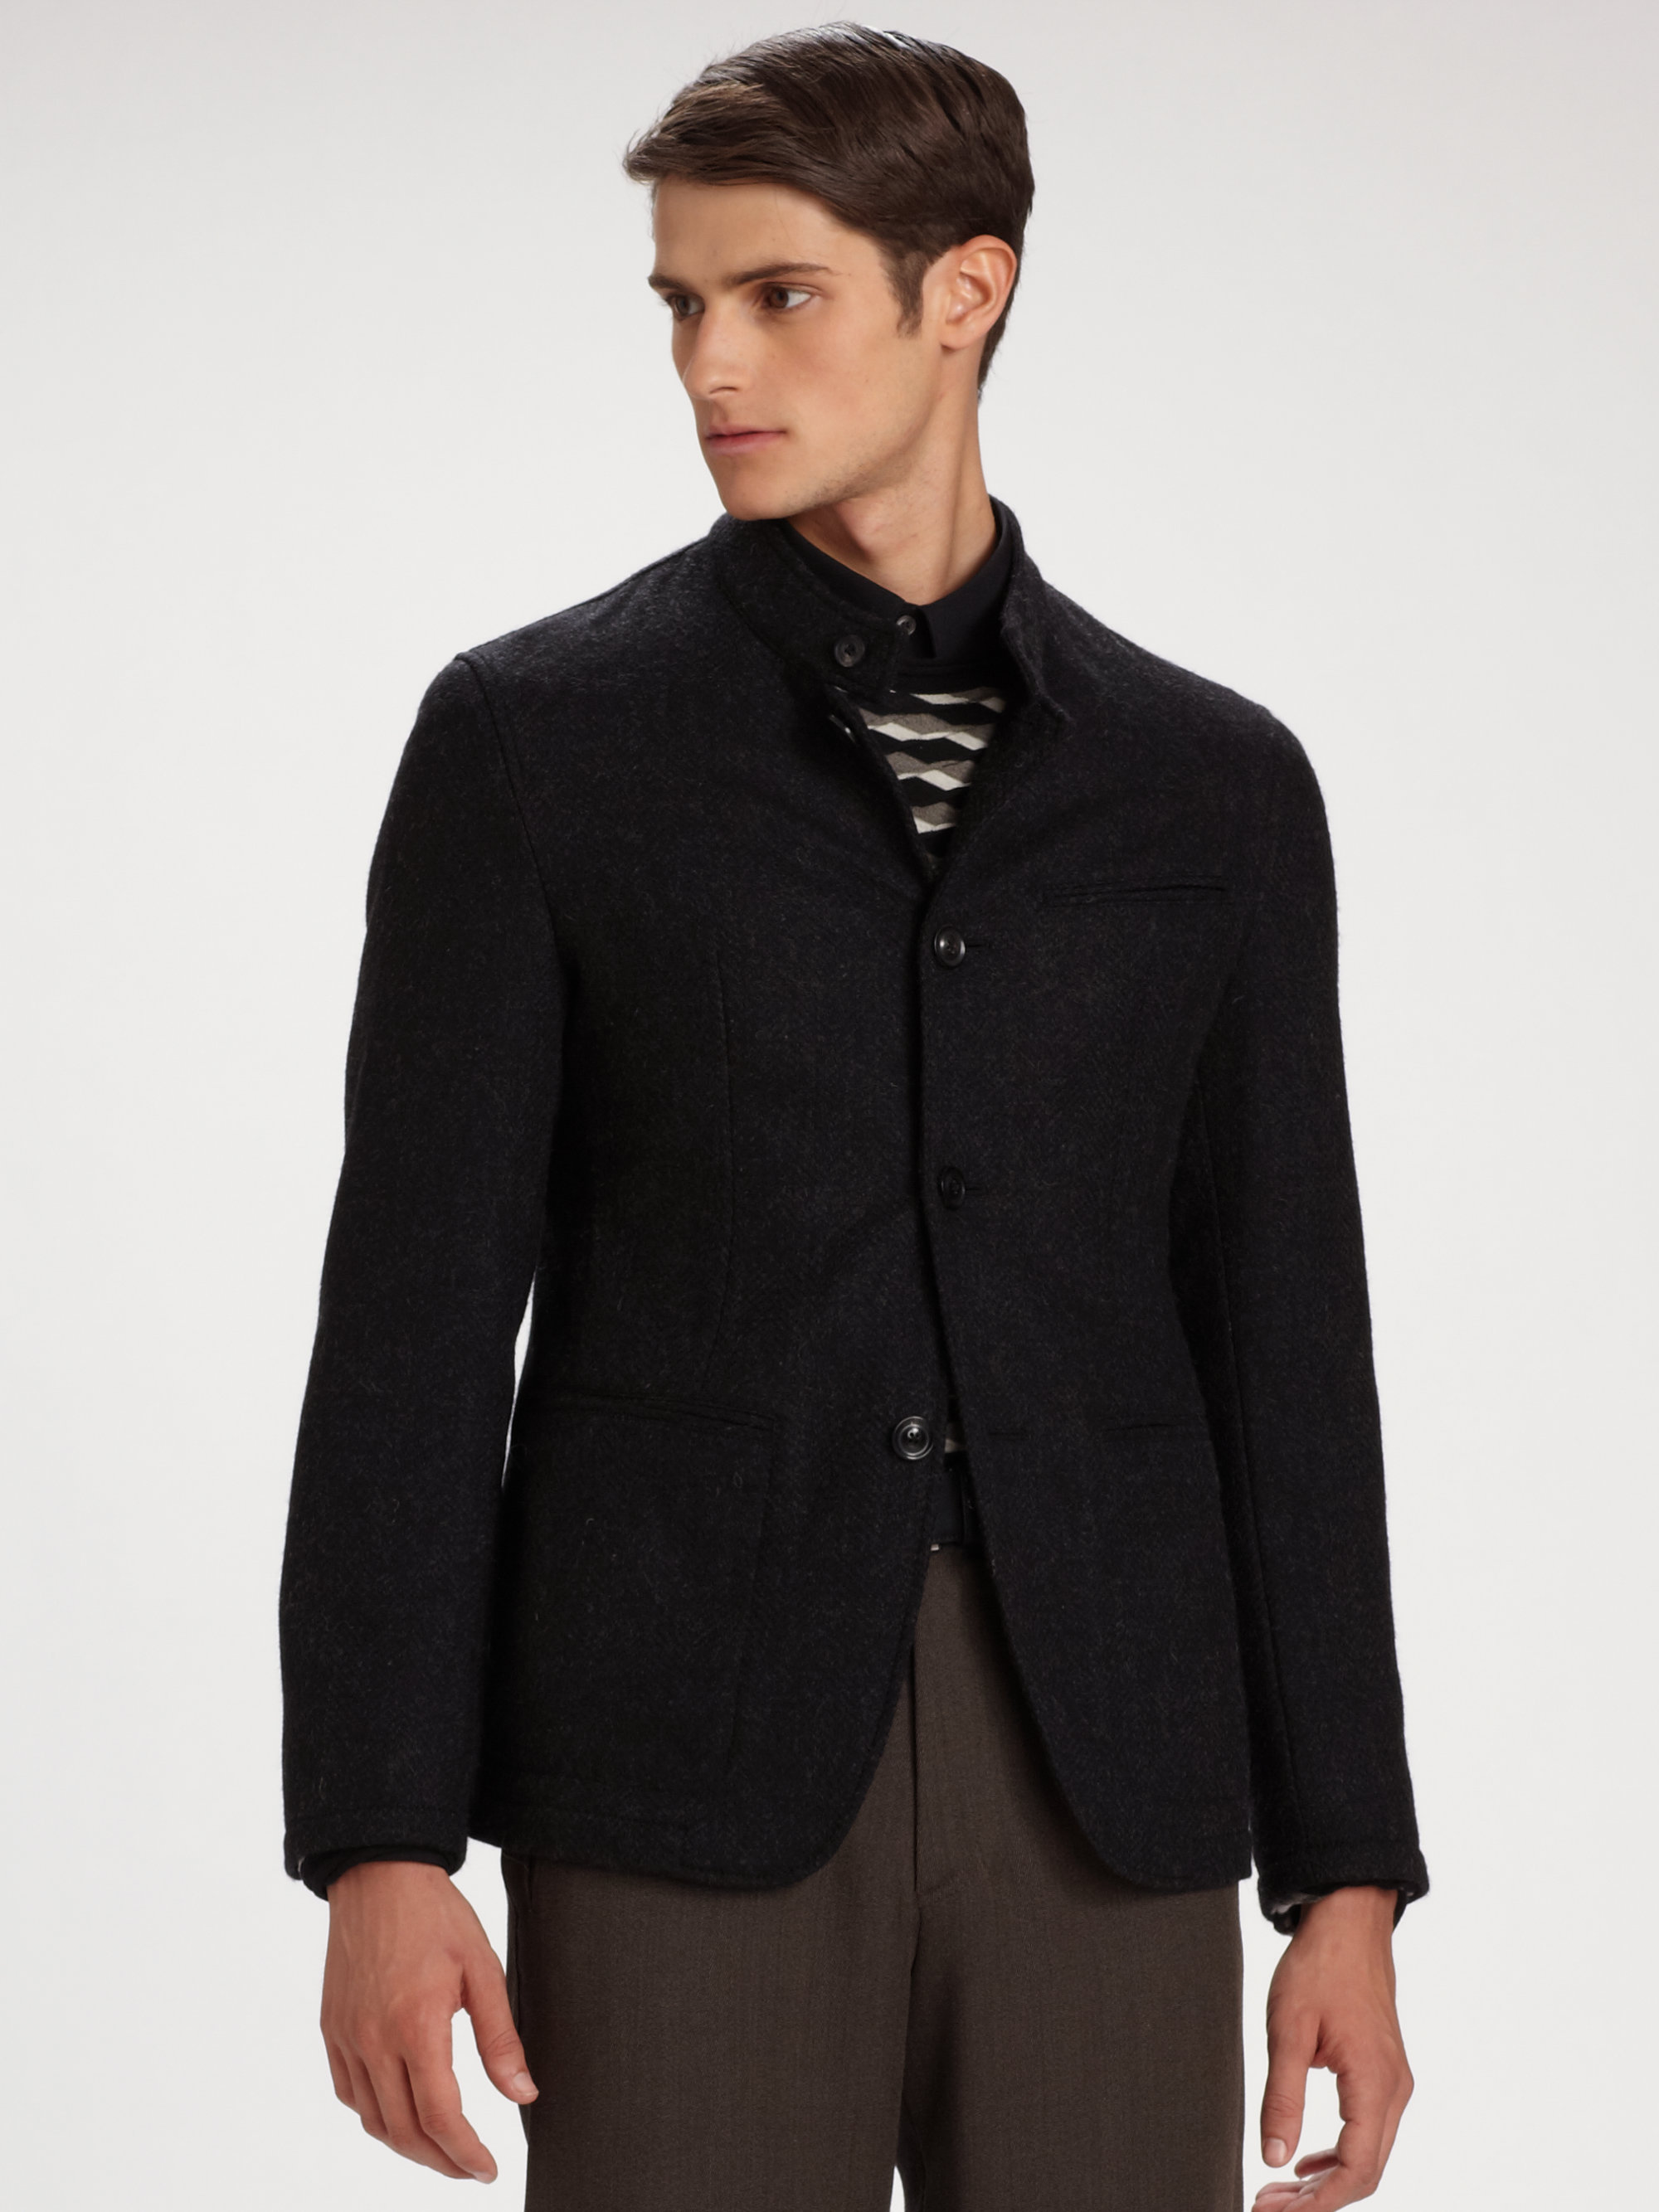 Lyst Armani Nehru Jacket In Gray For Men